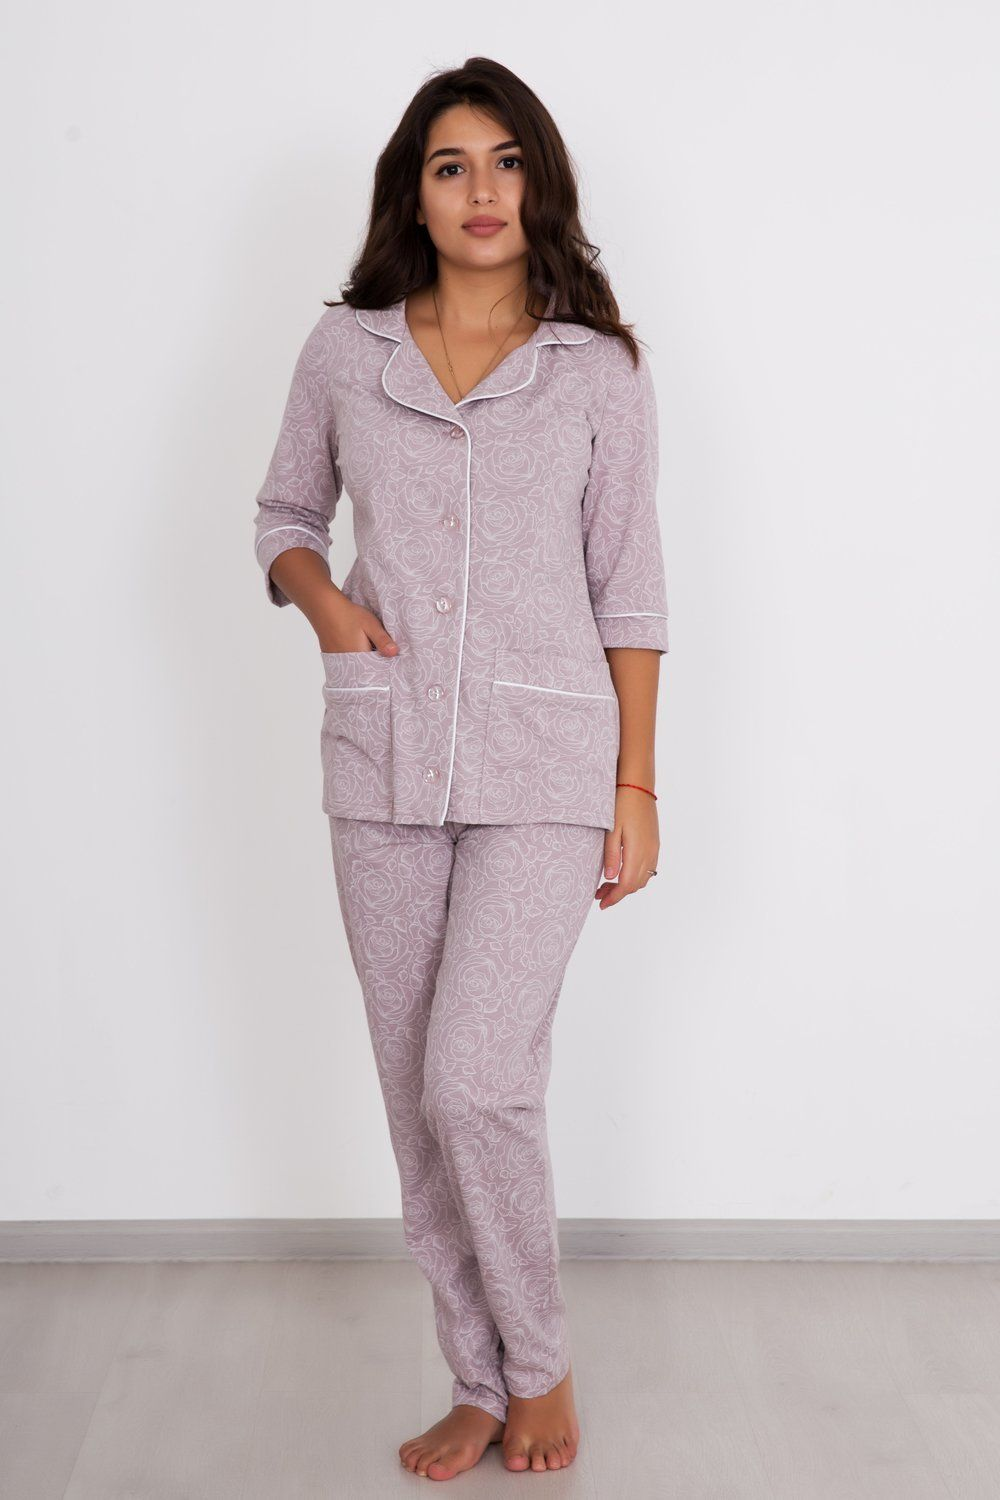 Lika Dress / Pajamas Deborah Art. 5131